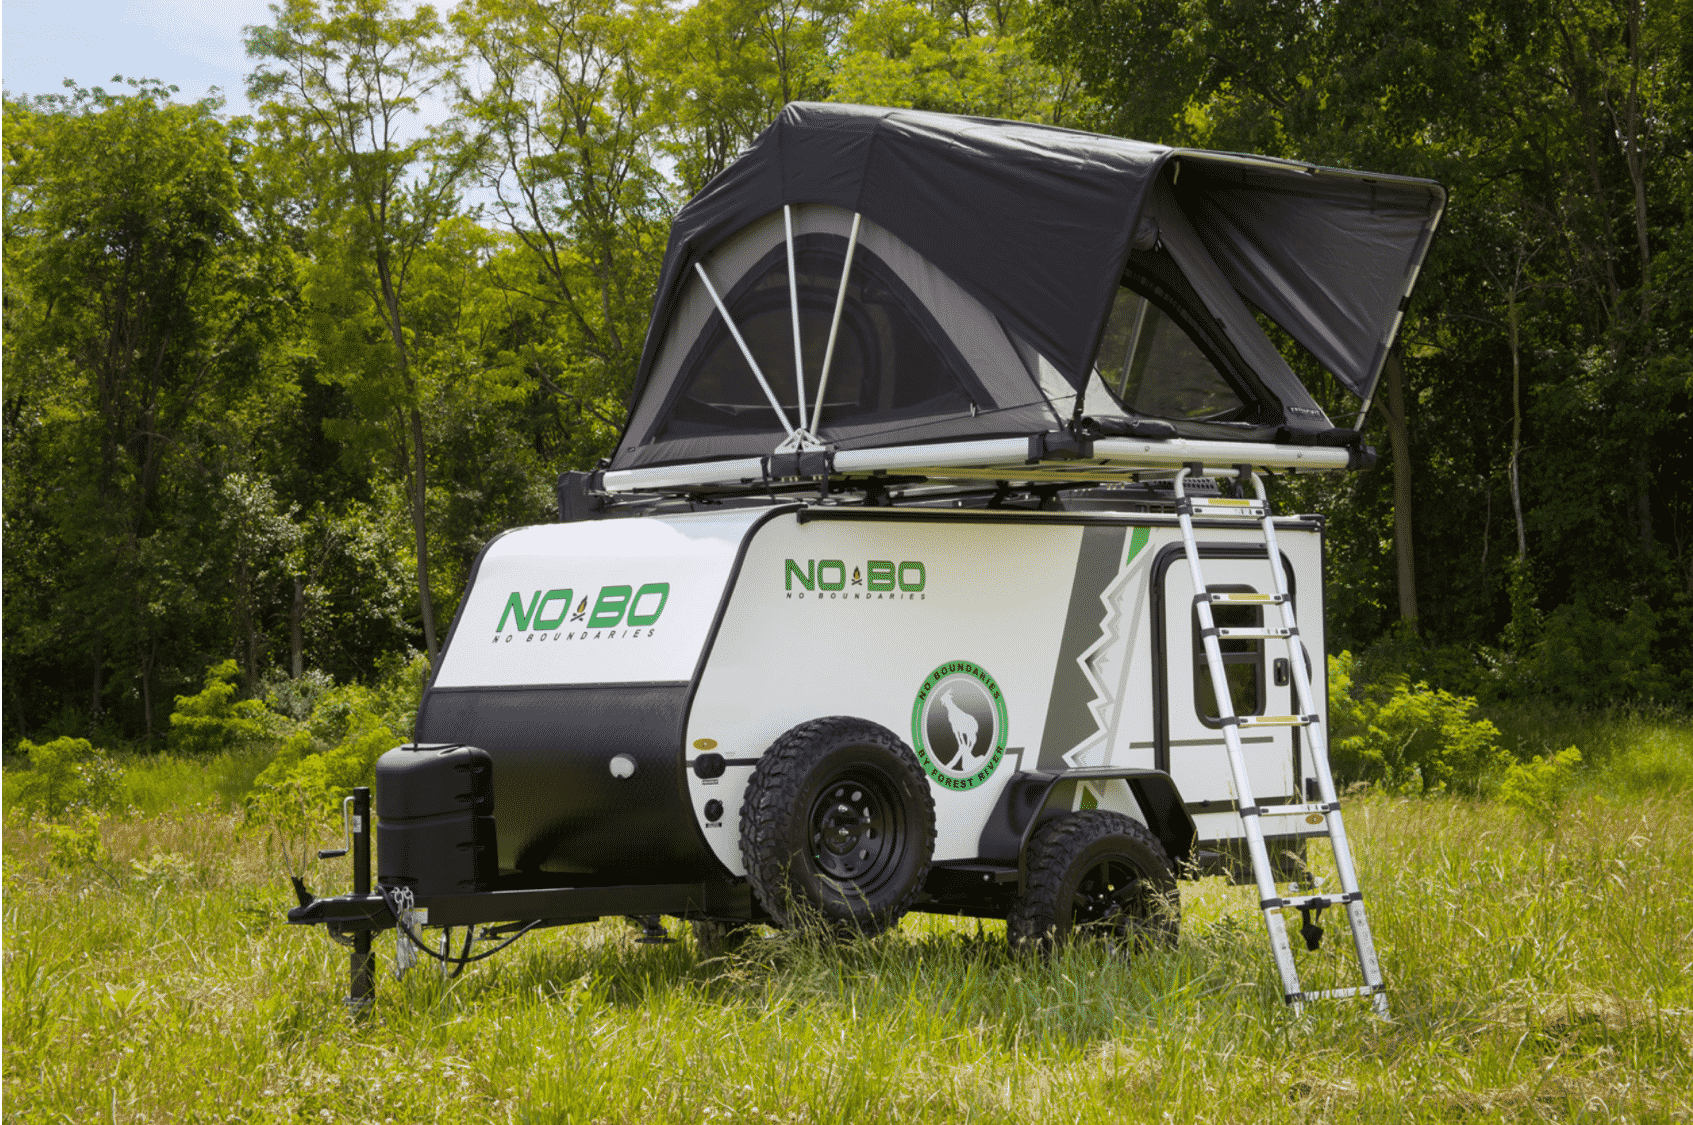 No Boundaries 10 Series is small enough to tow with an SUV